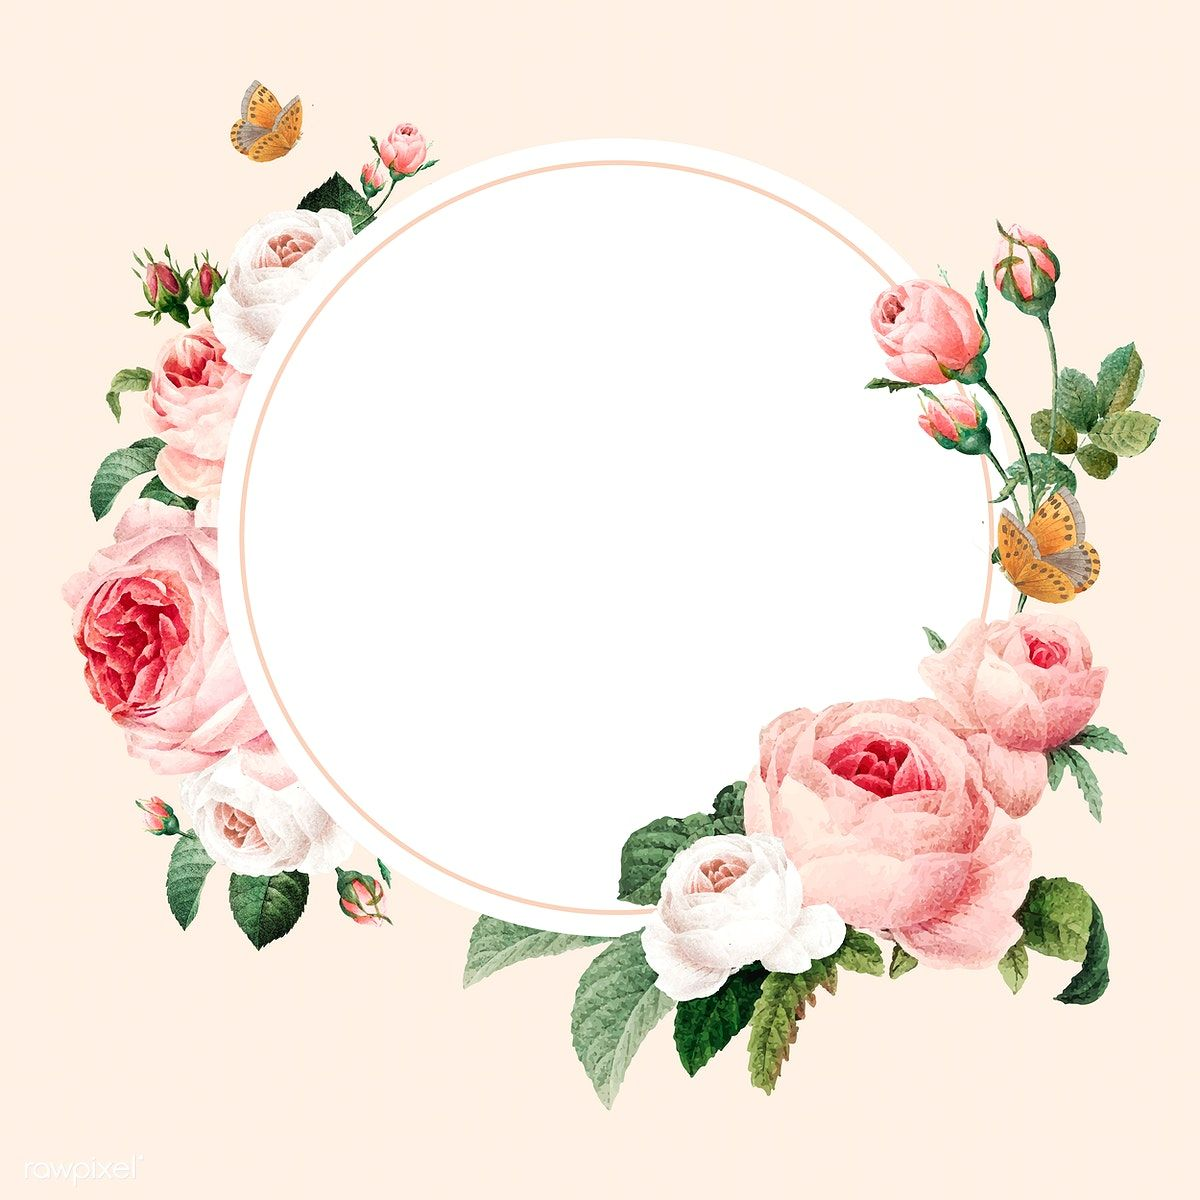 Elegant Round Floral Frame With Watercolor Flowers Decorative Floral Clipart Invitation Flowers Png Transparent Clipart Image And Psd File For Free Download Watercolor Flowers Floral Border Design Watercolor Flower Wreath